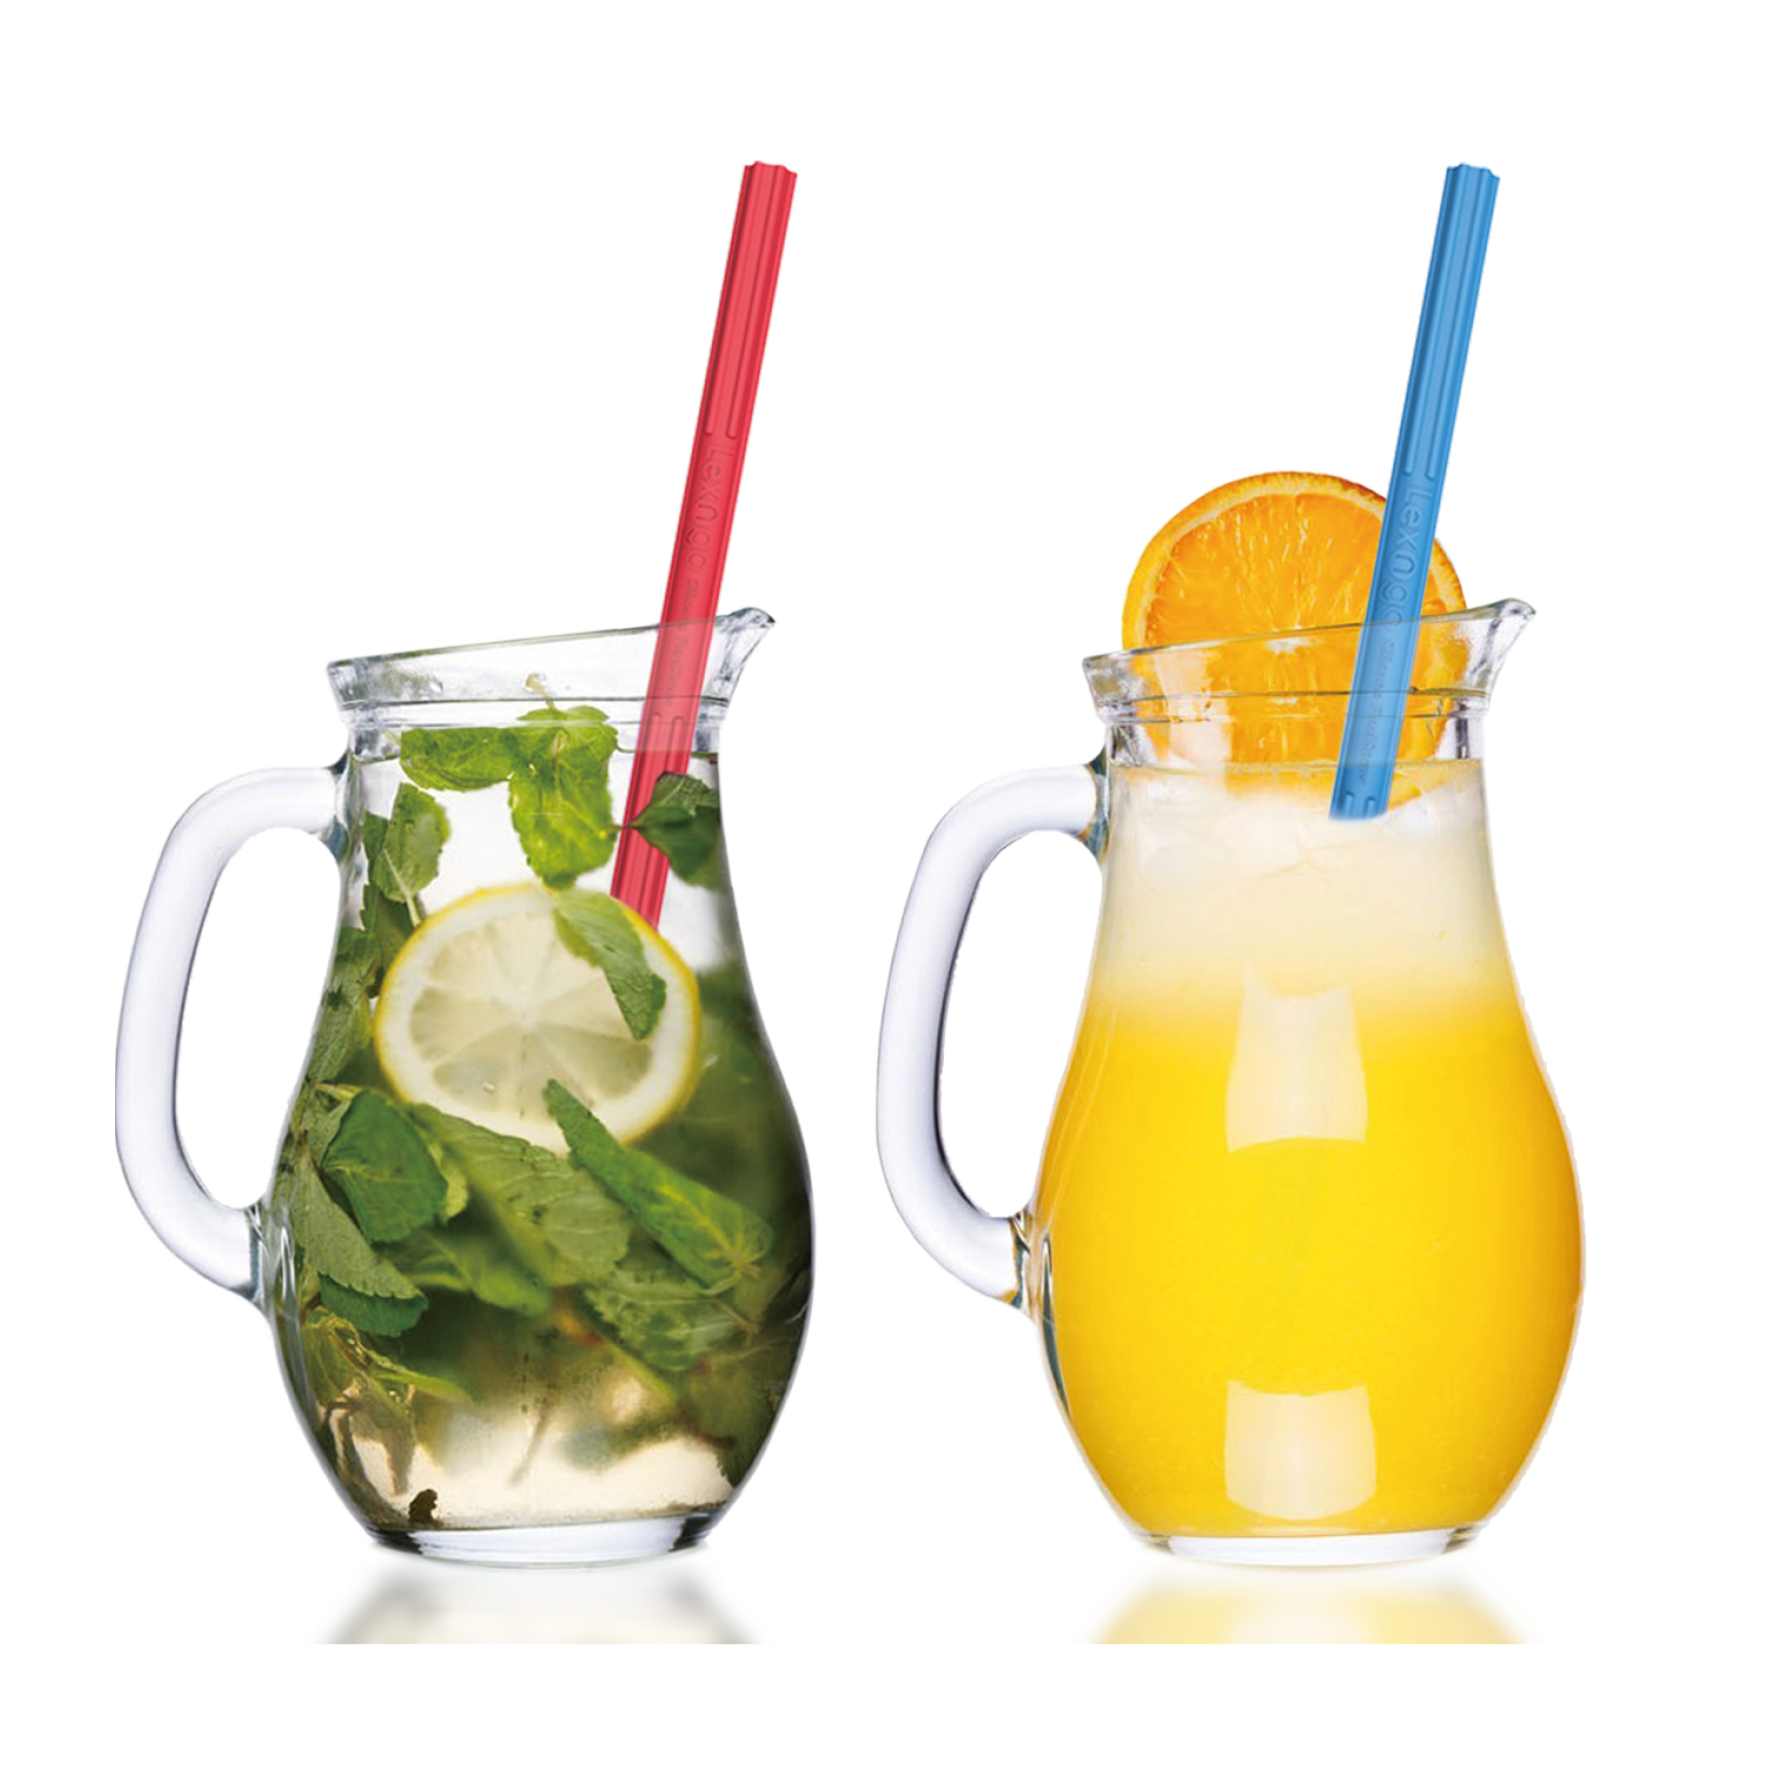 Lexngo Reusable Flexi Straw 環保矽膠飲筒